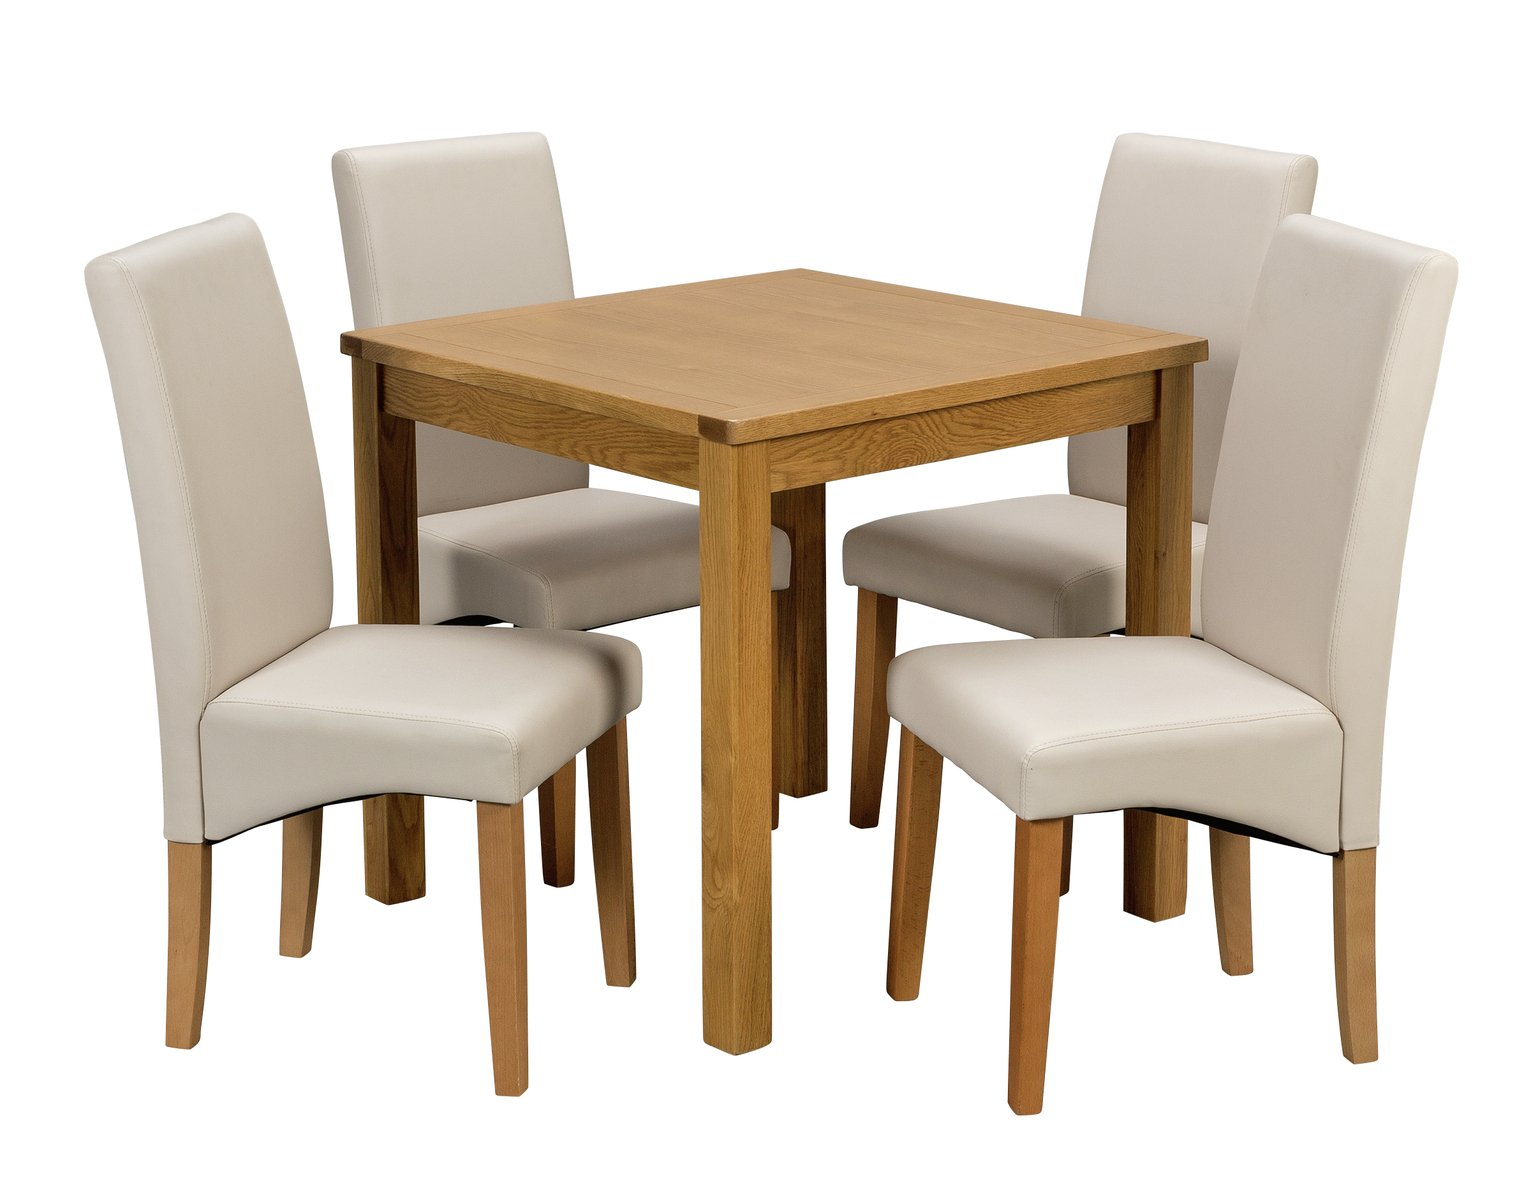 Argos Home Ashwell Dining Table and 4 Chairs - Cream